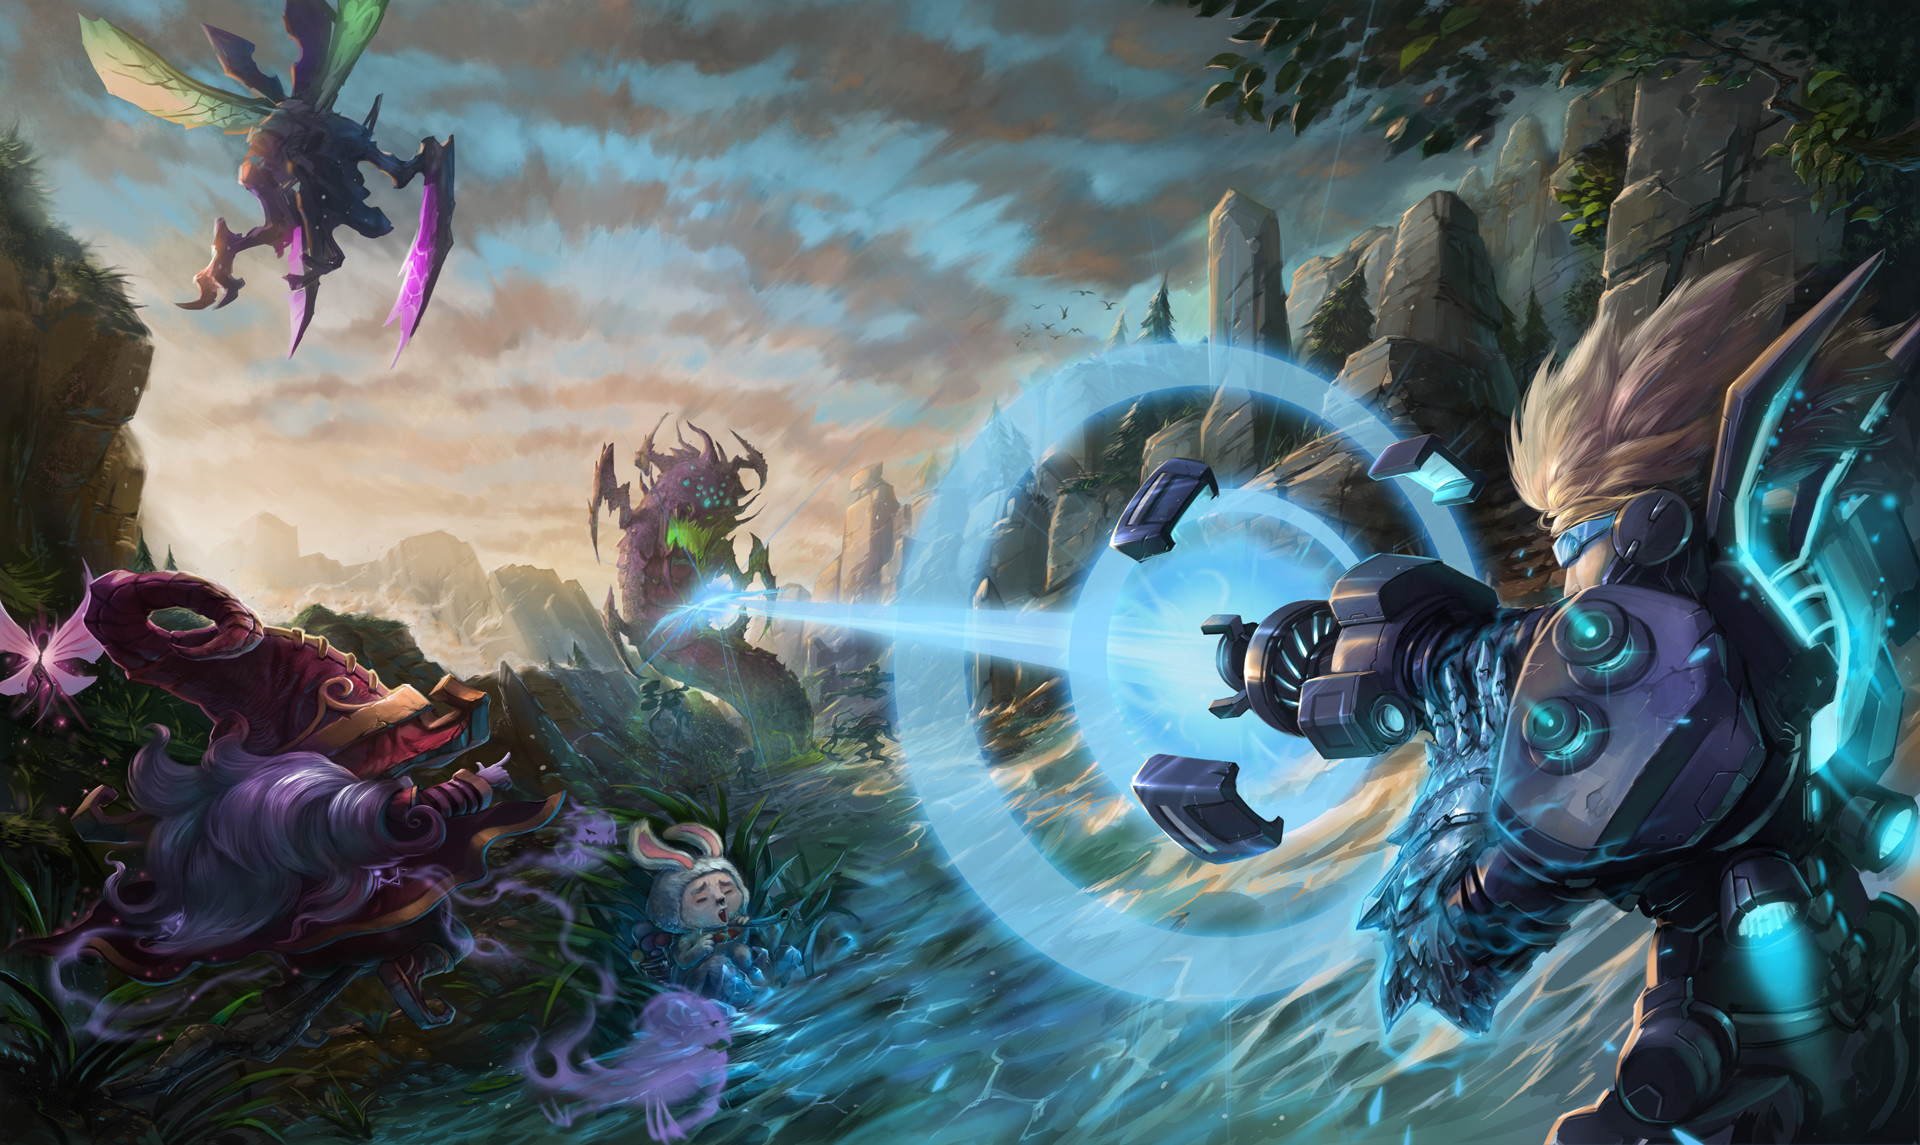 Res: 1920x1145, Assaulting the ultimate objective on Summoner's Rift is easier when you're  properly equipped. As Pulsefire Ezreal prepares to test out his Iceborn  Gauntlet, ...